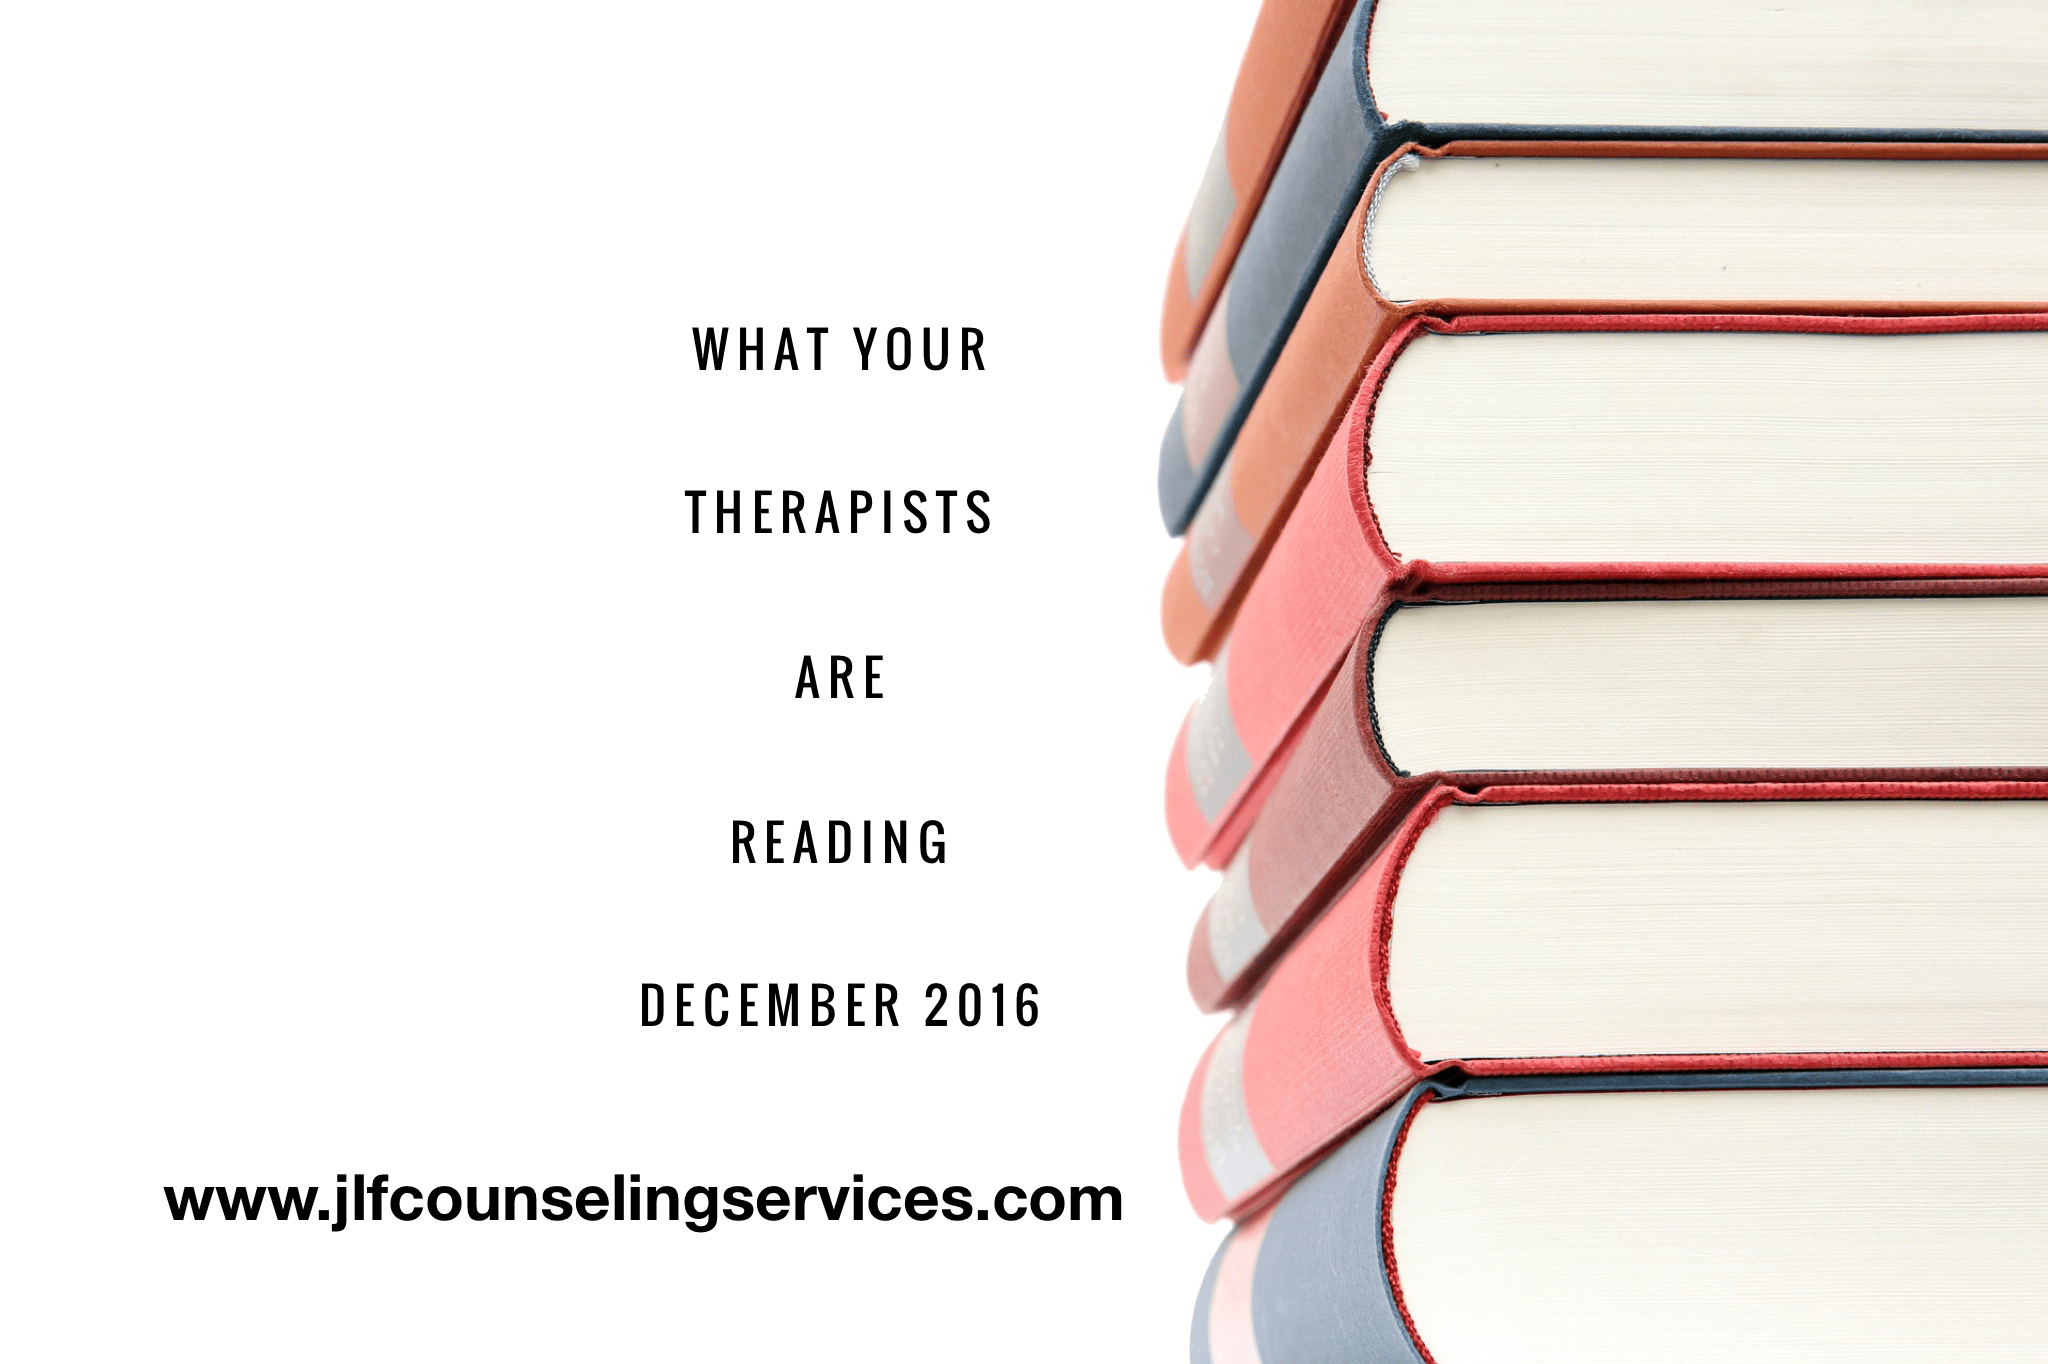 What your therapists are reading december 2016 jlf counseling i cant believe i have been doing the blog post what your therapists are reading for 2 years now i am so grateful for all those who have contributed to negle Choice Image